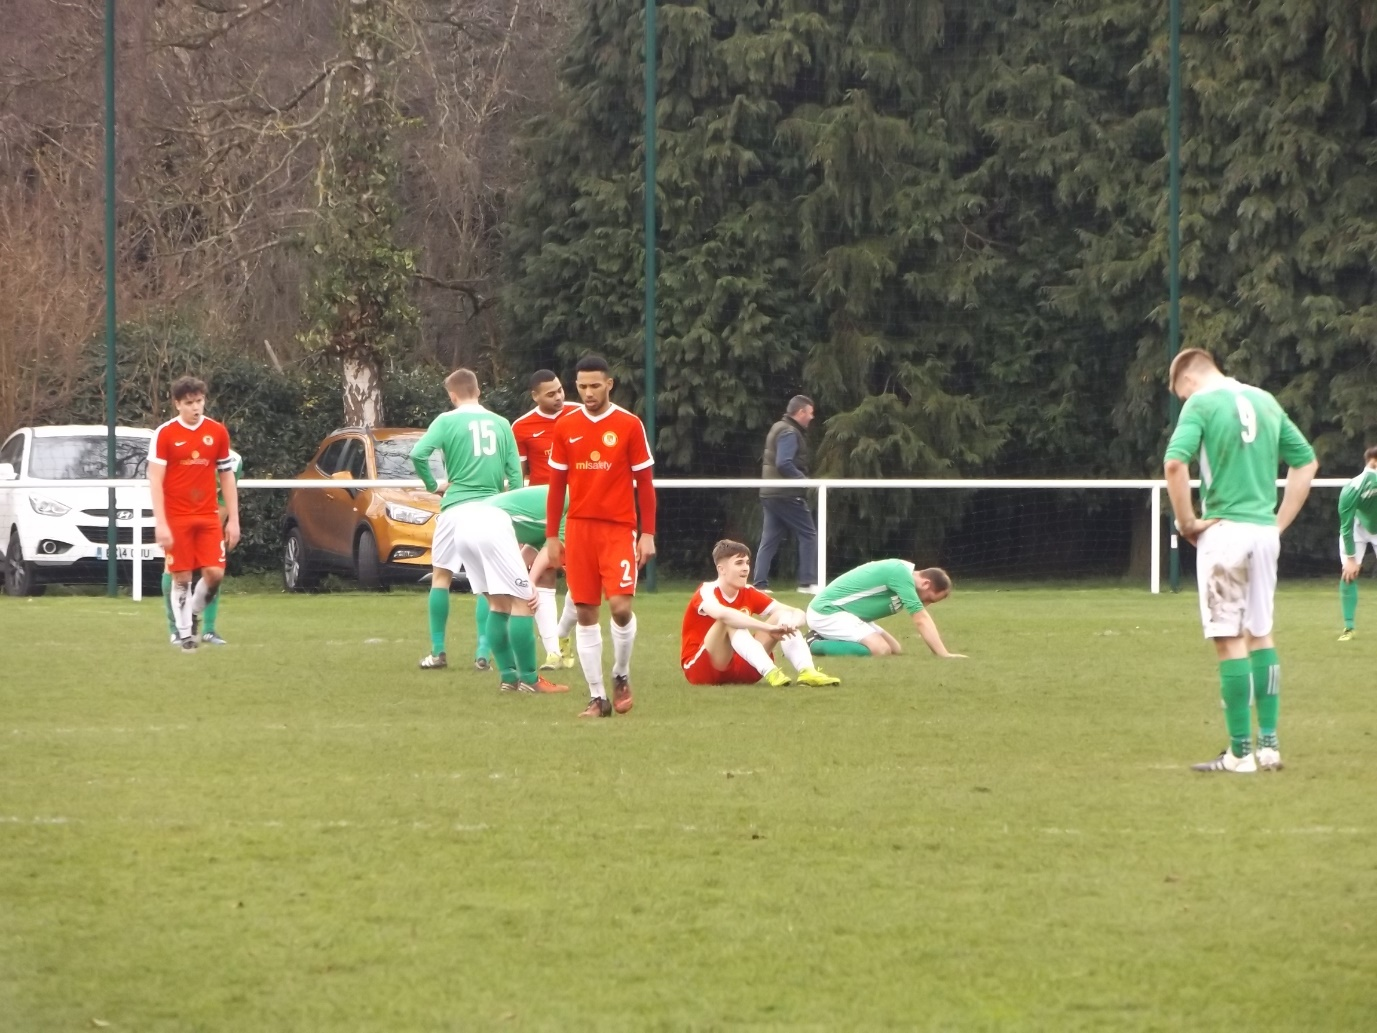 The final whistle offers players a moment to reflect on the physical, competitive nature of today's contest